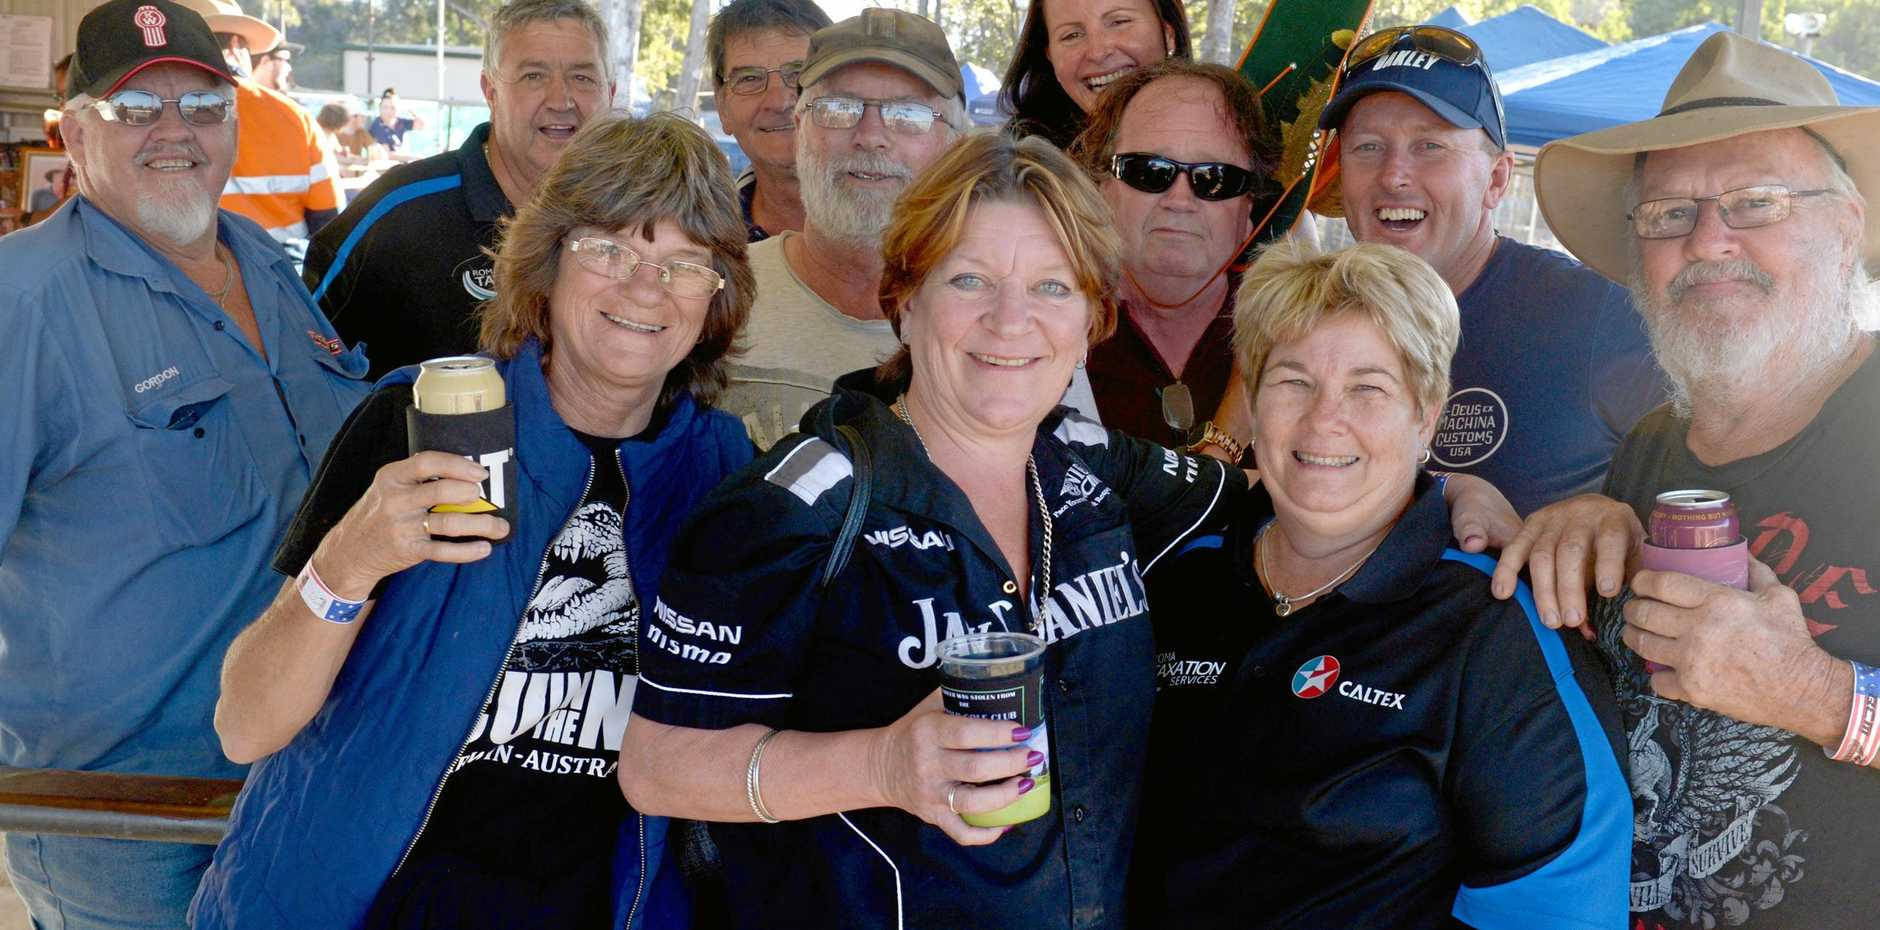 Porky Jurd, Darryl Beck, Sao Kay, Stacey Bowden, Steve Bryon, David Bryon, Natalie Garwood, Leanne Richters, Dana Beck, Craig McDermott and Myrtle Whitbread at the Twin Track Mud Truck CQ titles on Saturday